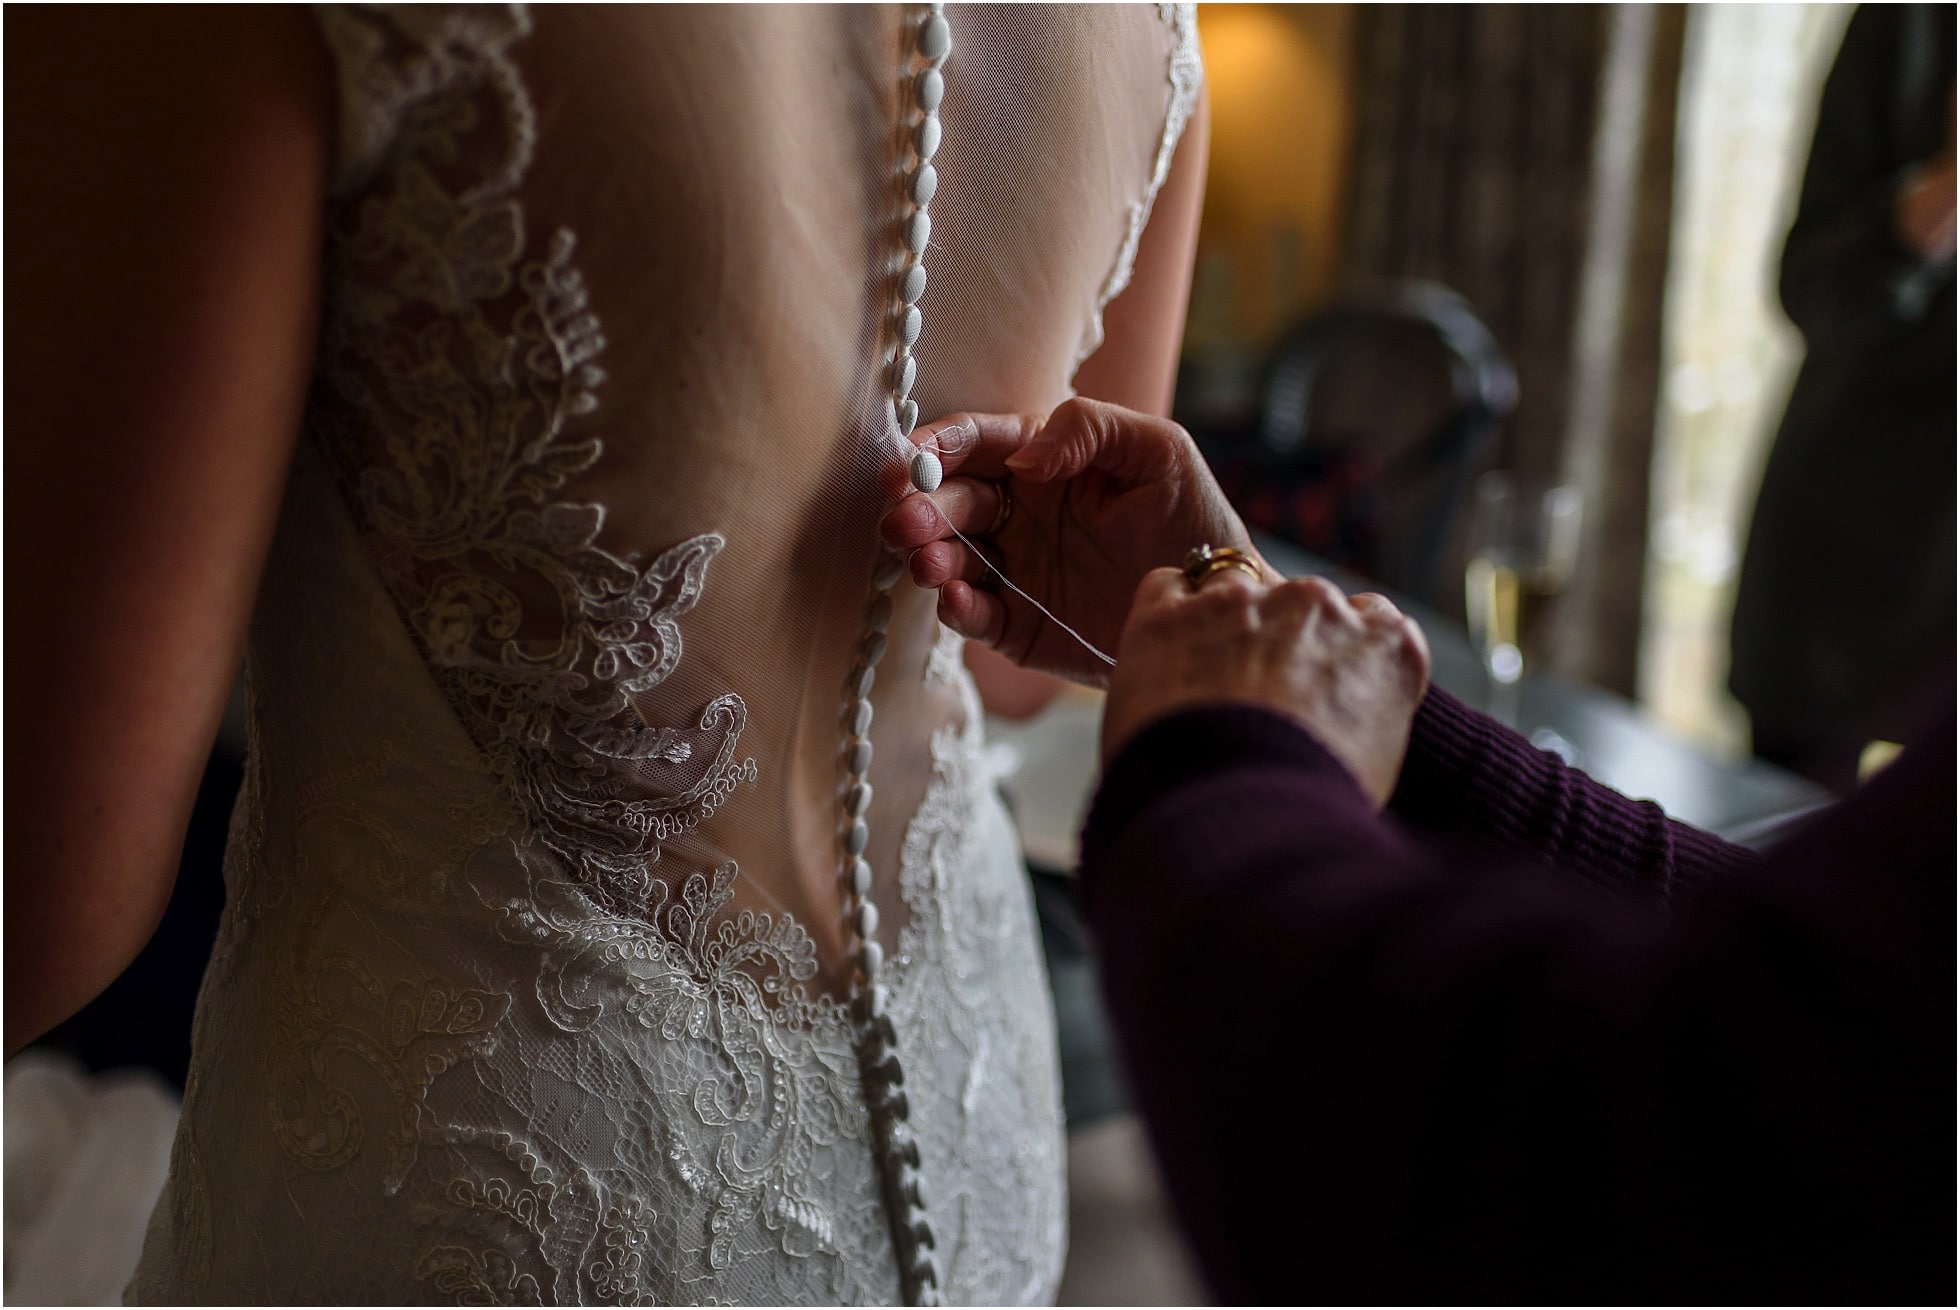 Fixing the dress just before the wedding